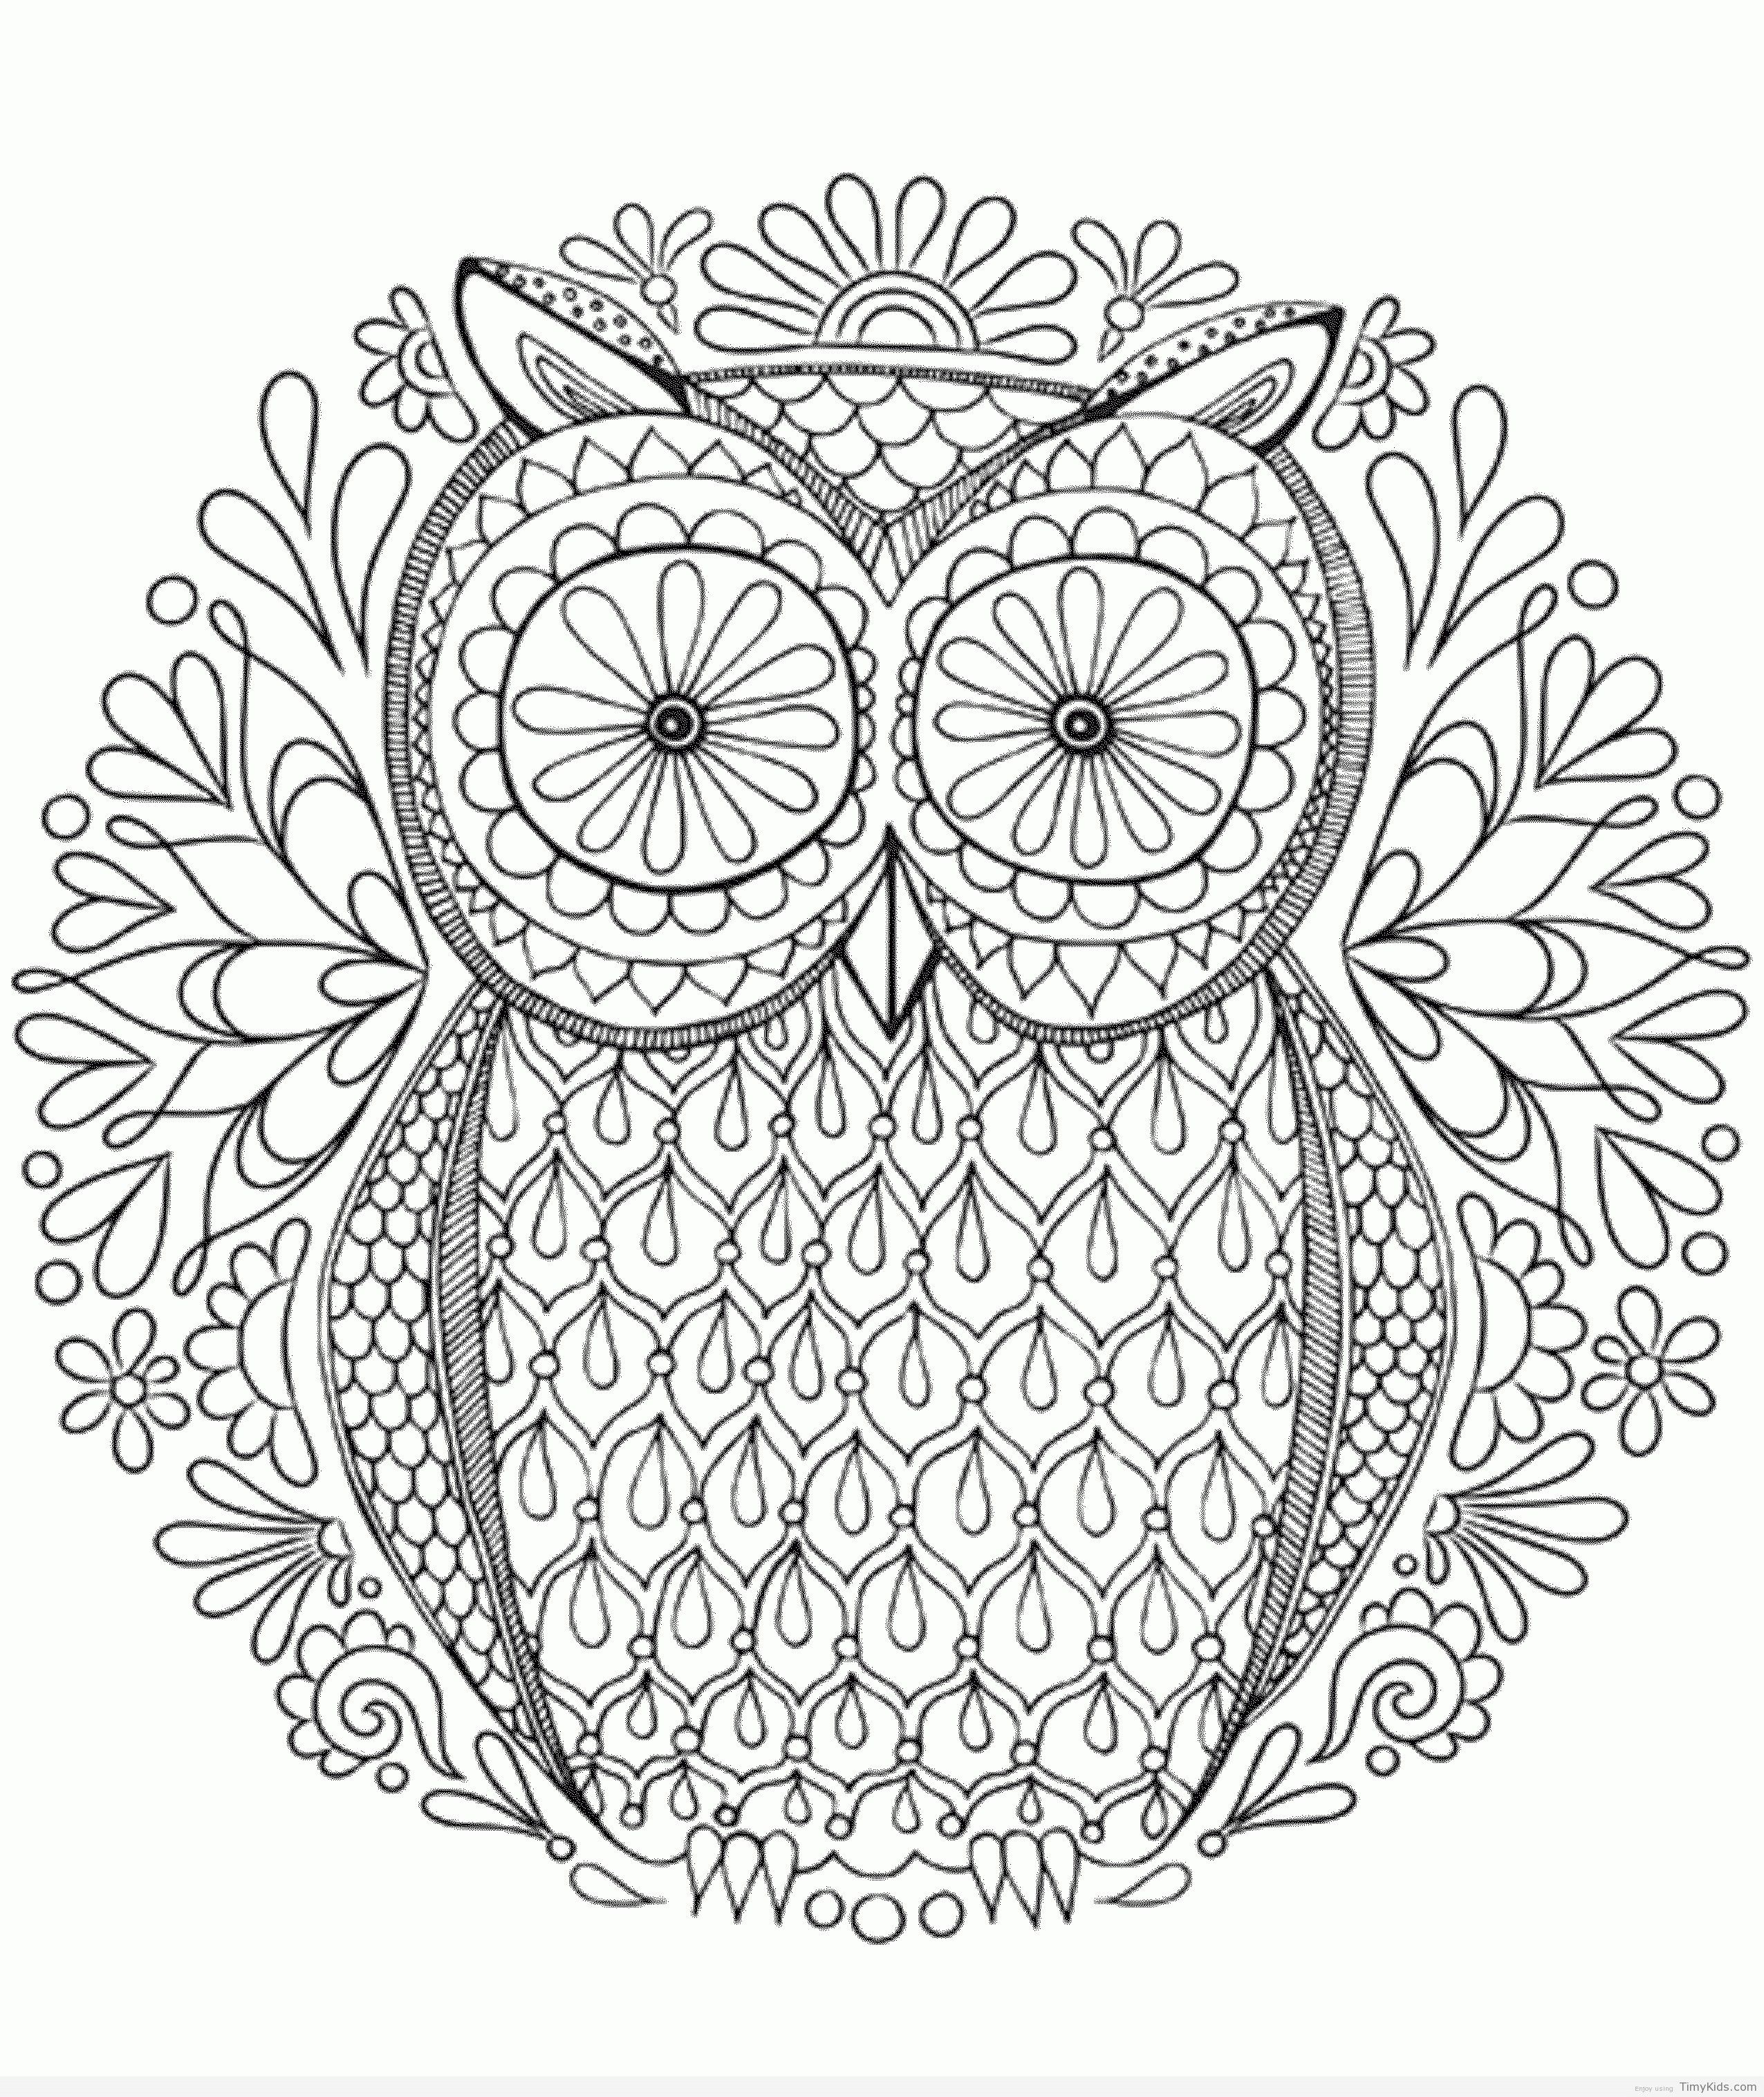 Coloring Ideas : Freee Hard Coloring Pages For Adults Kids Save - Free Printable Hard Coloring Pages For Adults